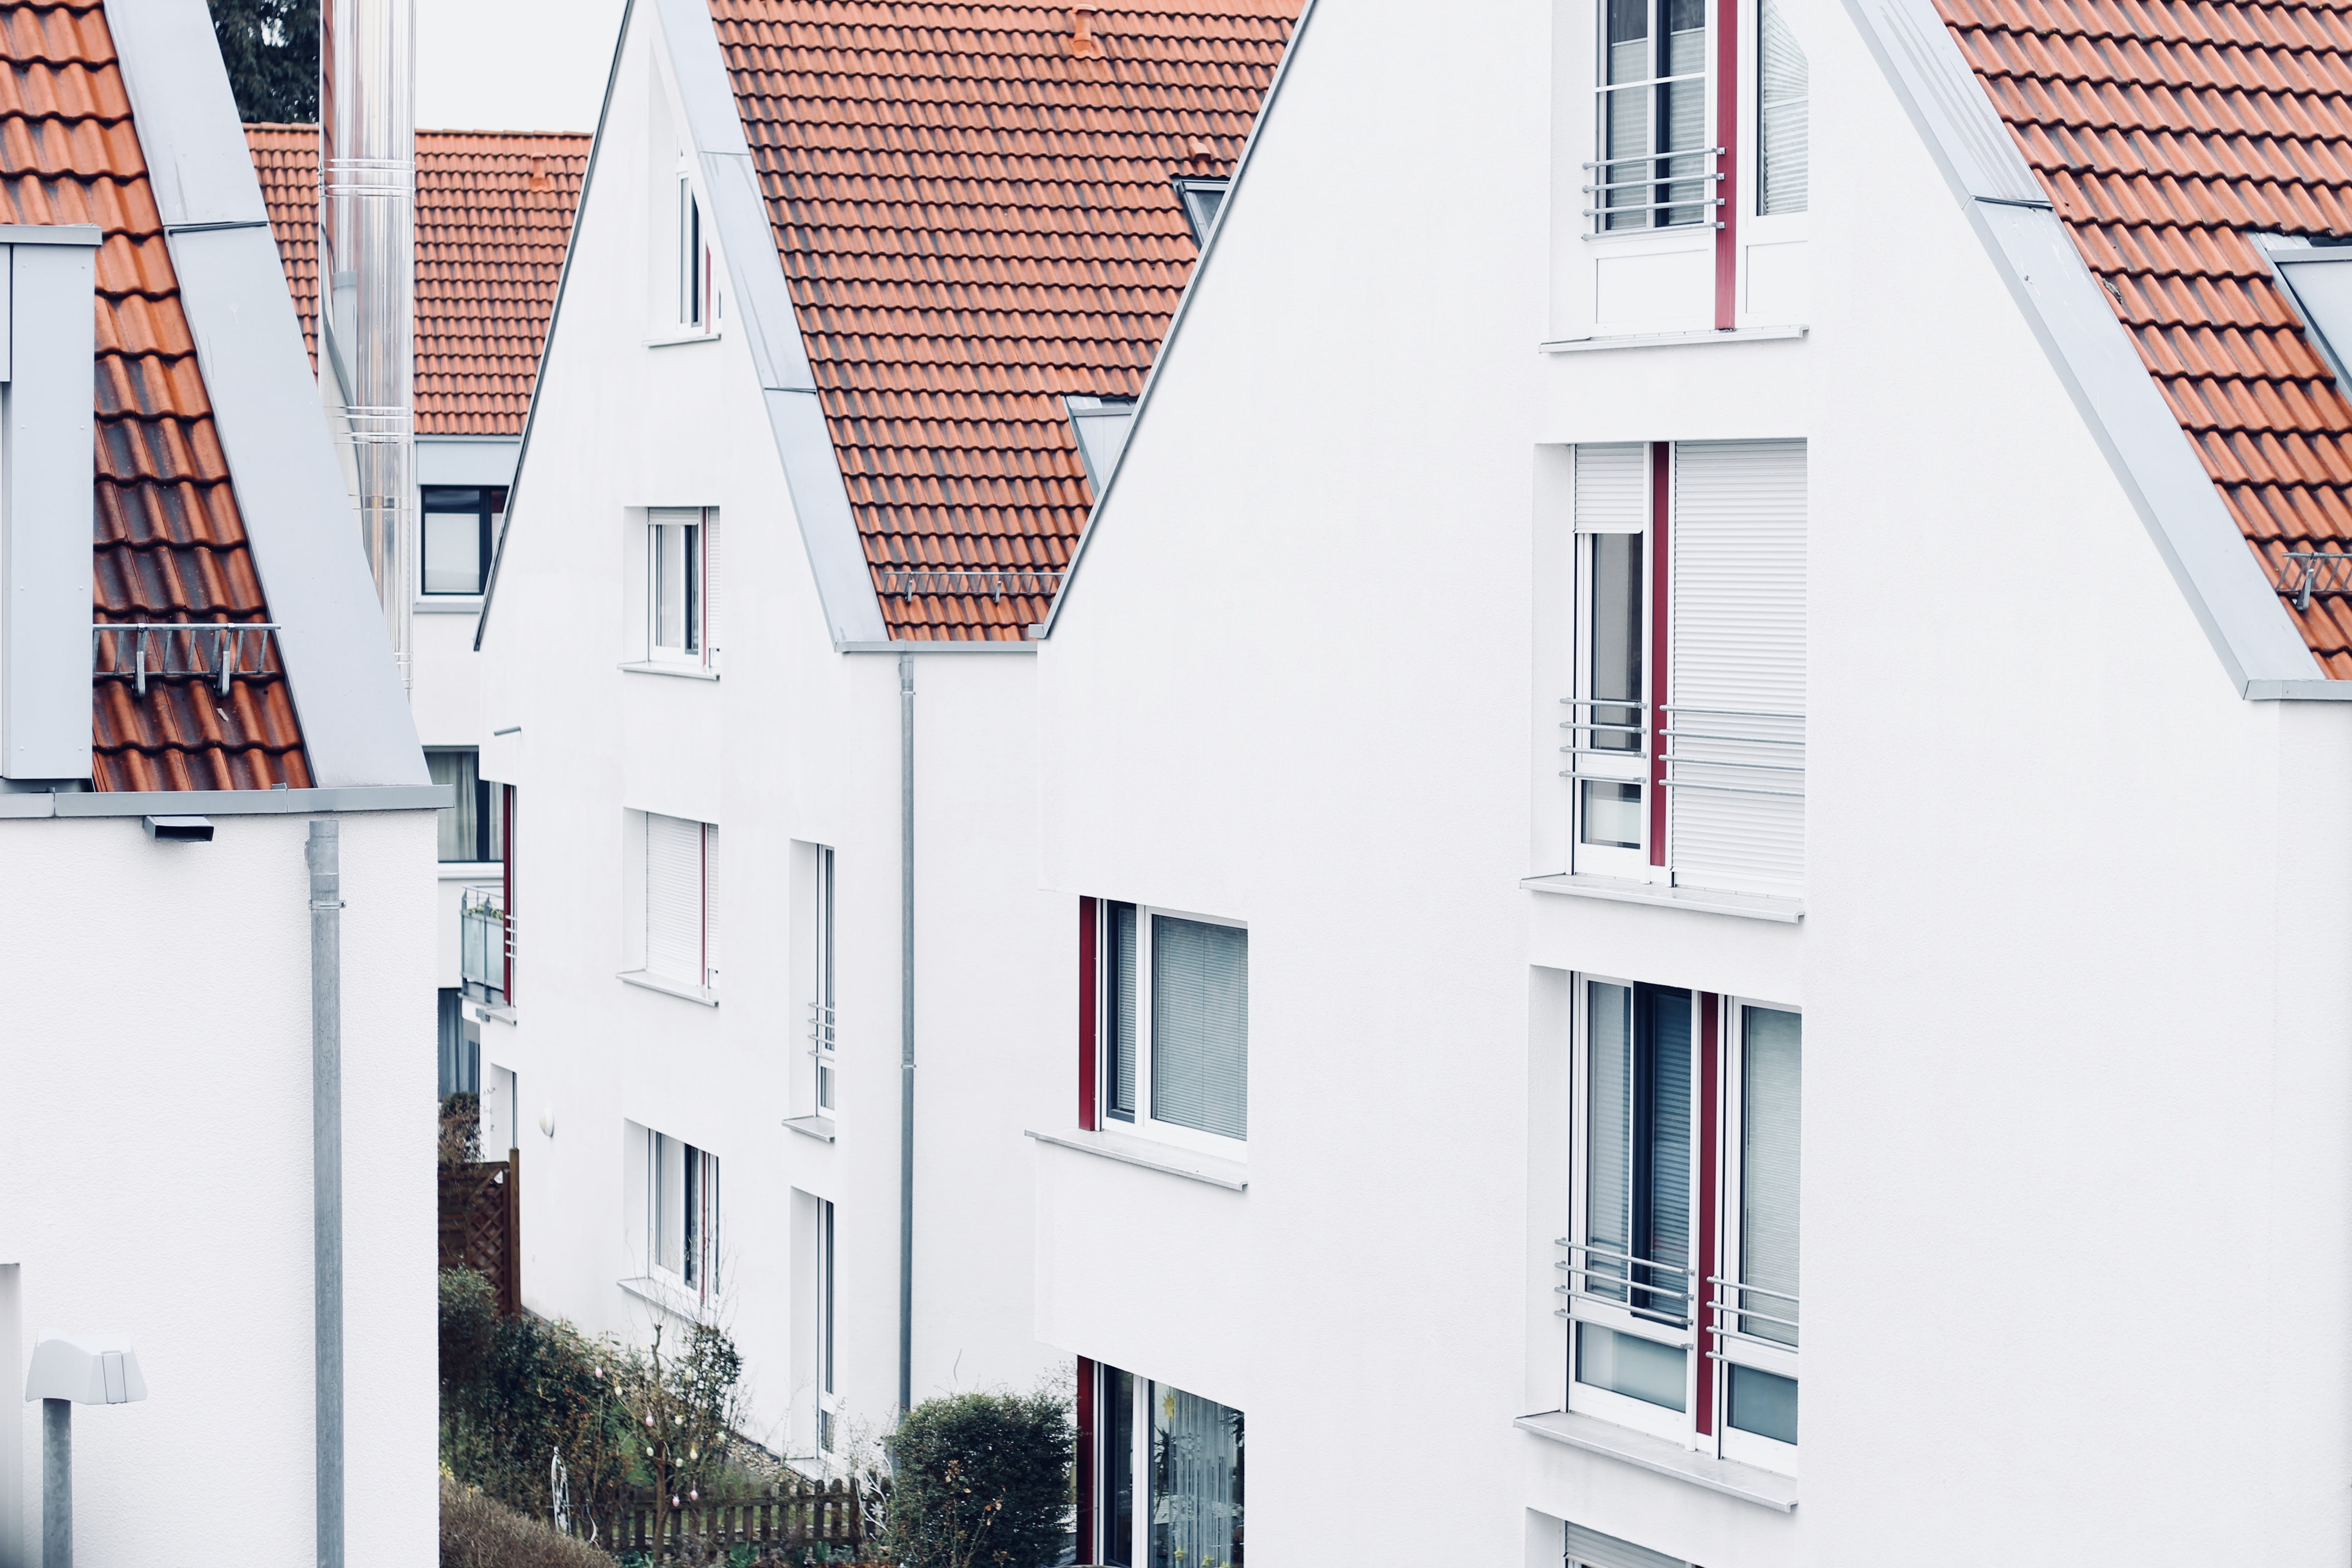 Photo of White Concrete Houses at Daytime